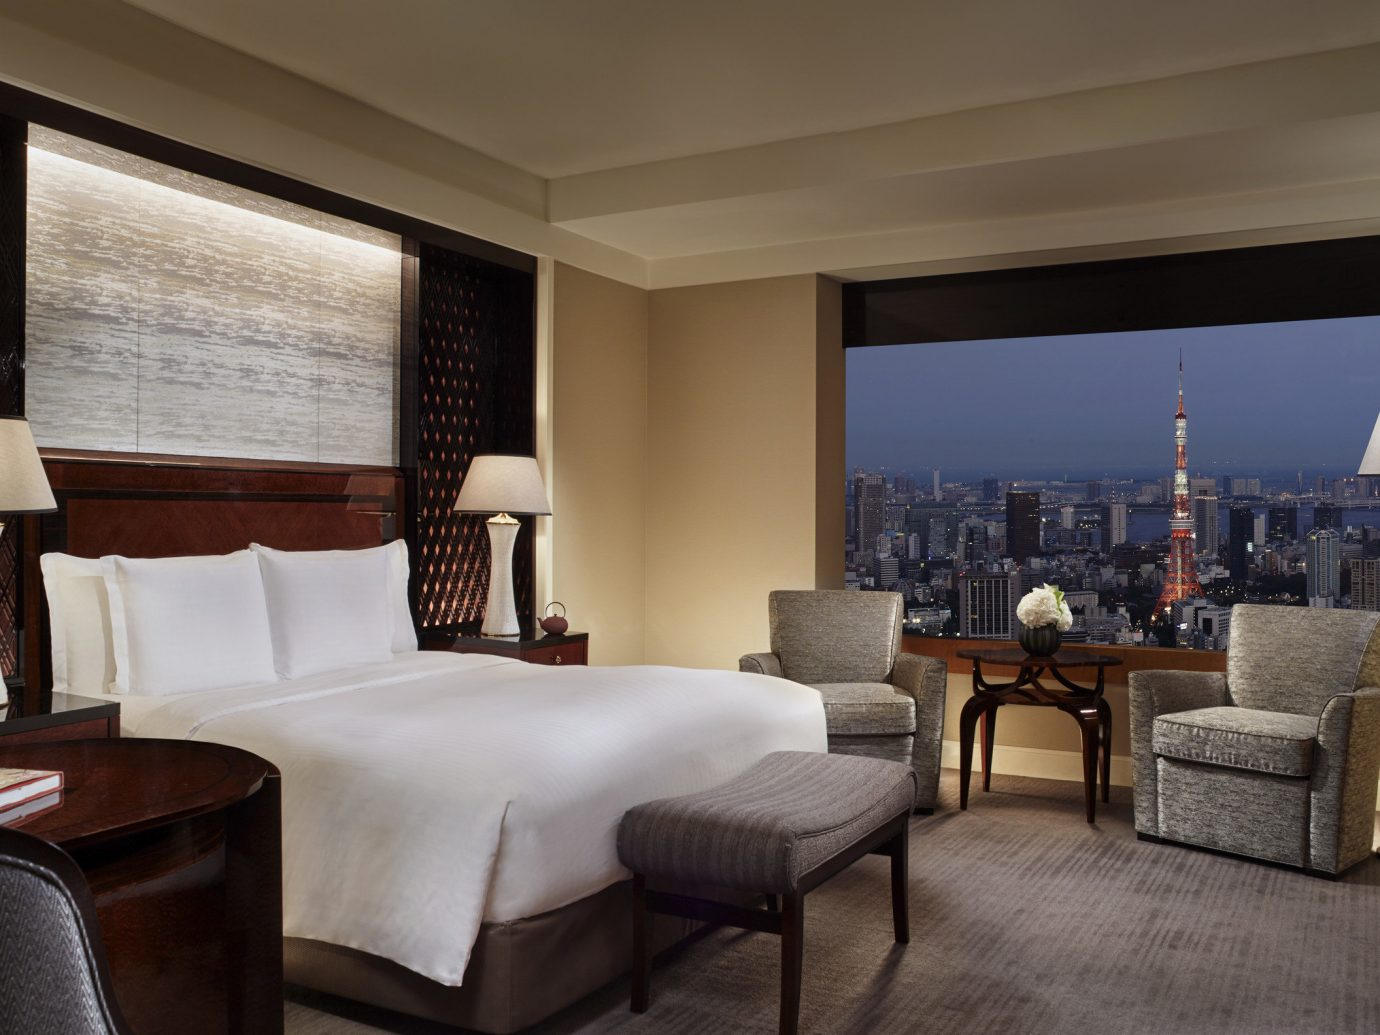 Hotels Japan Romance Tokyo indoor floor room wall ceiling hotel chair property Living Suite estate living room home Bedroom interior design real estate nice cottage condominium furniture area decorated